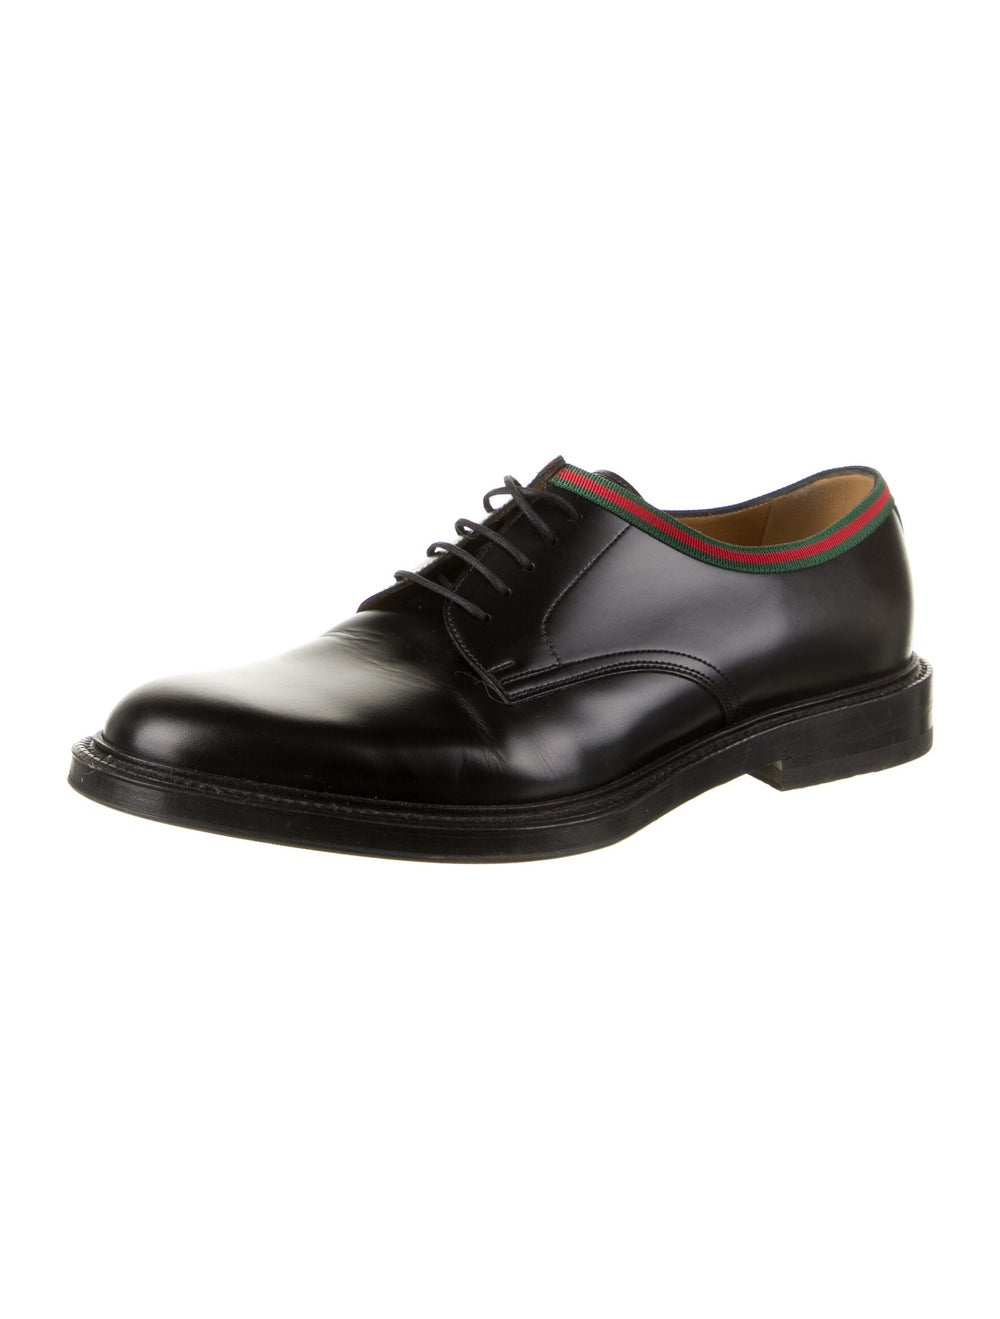 Gucci Web Accent Leather Derby Shoes Black - image 2